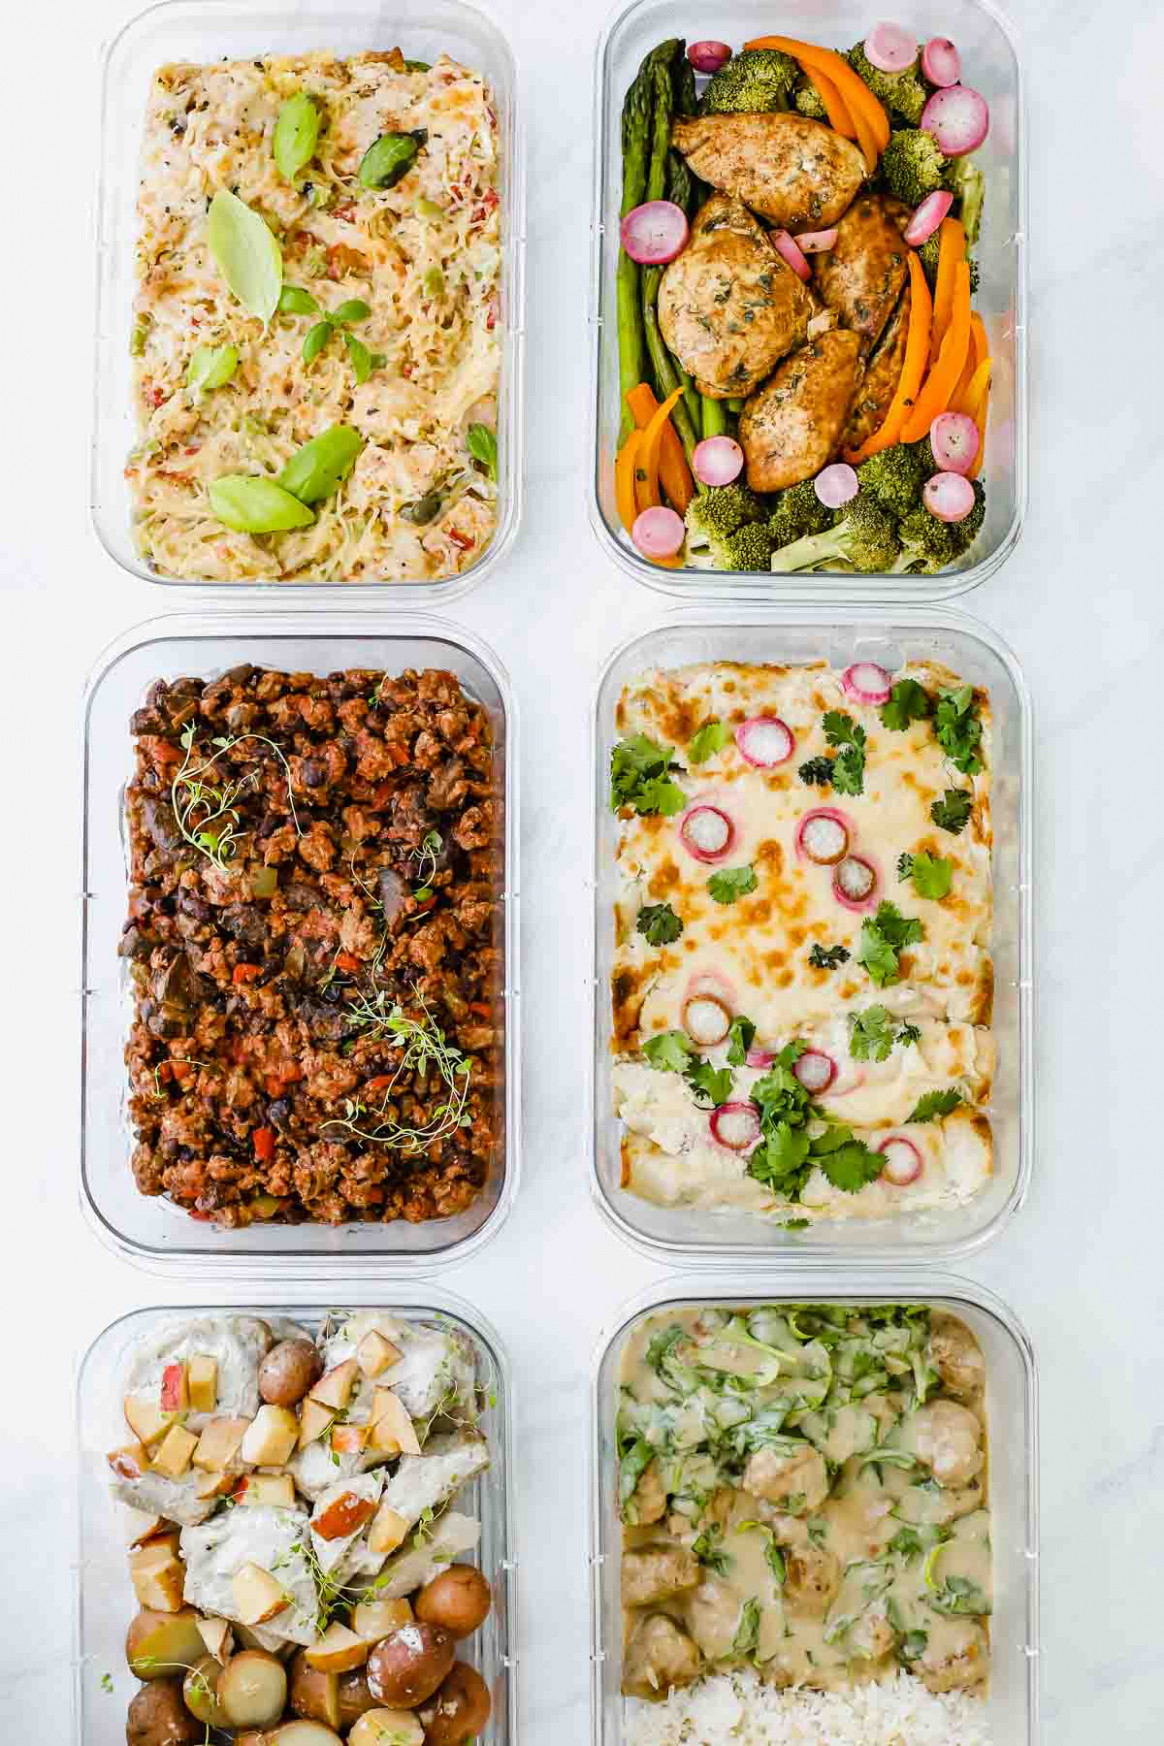 10 Healthy Freezer Meals For New Moms (Or Anyone!) - Jar Of ..